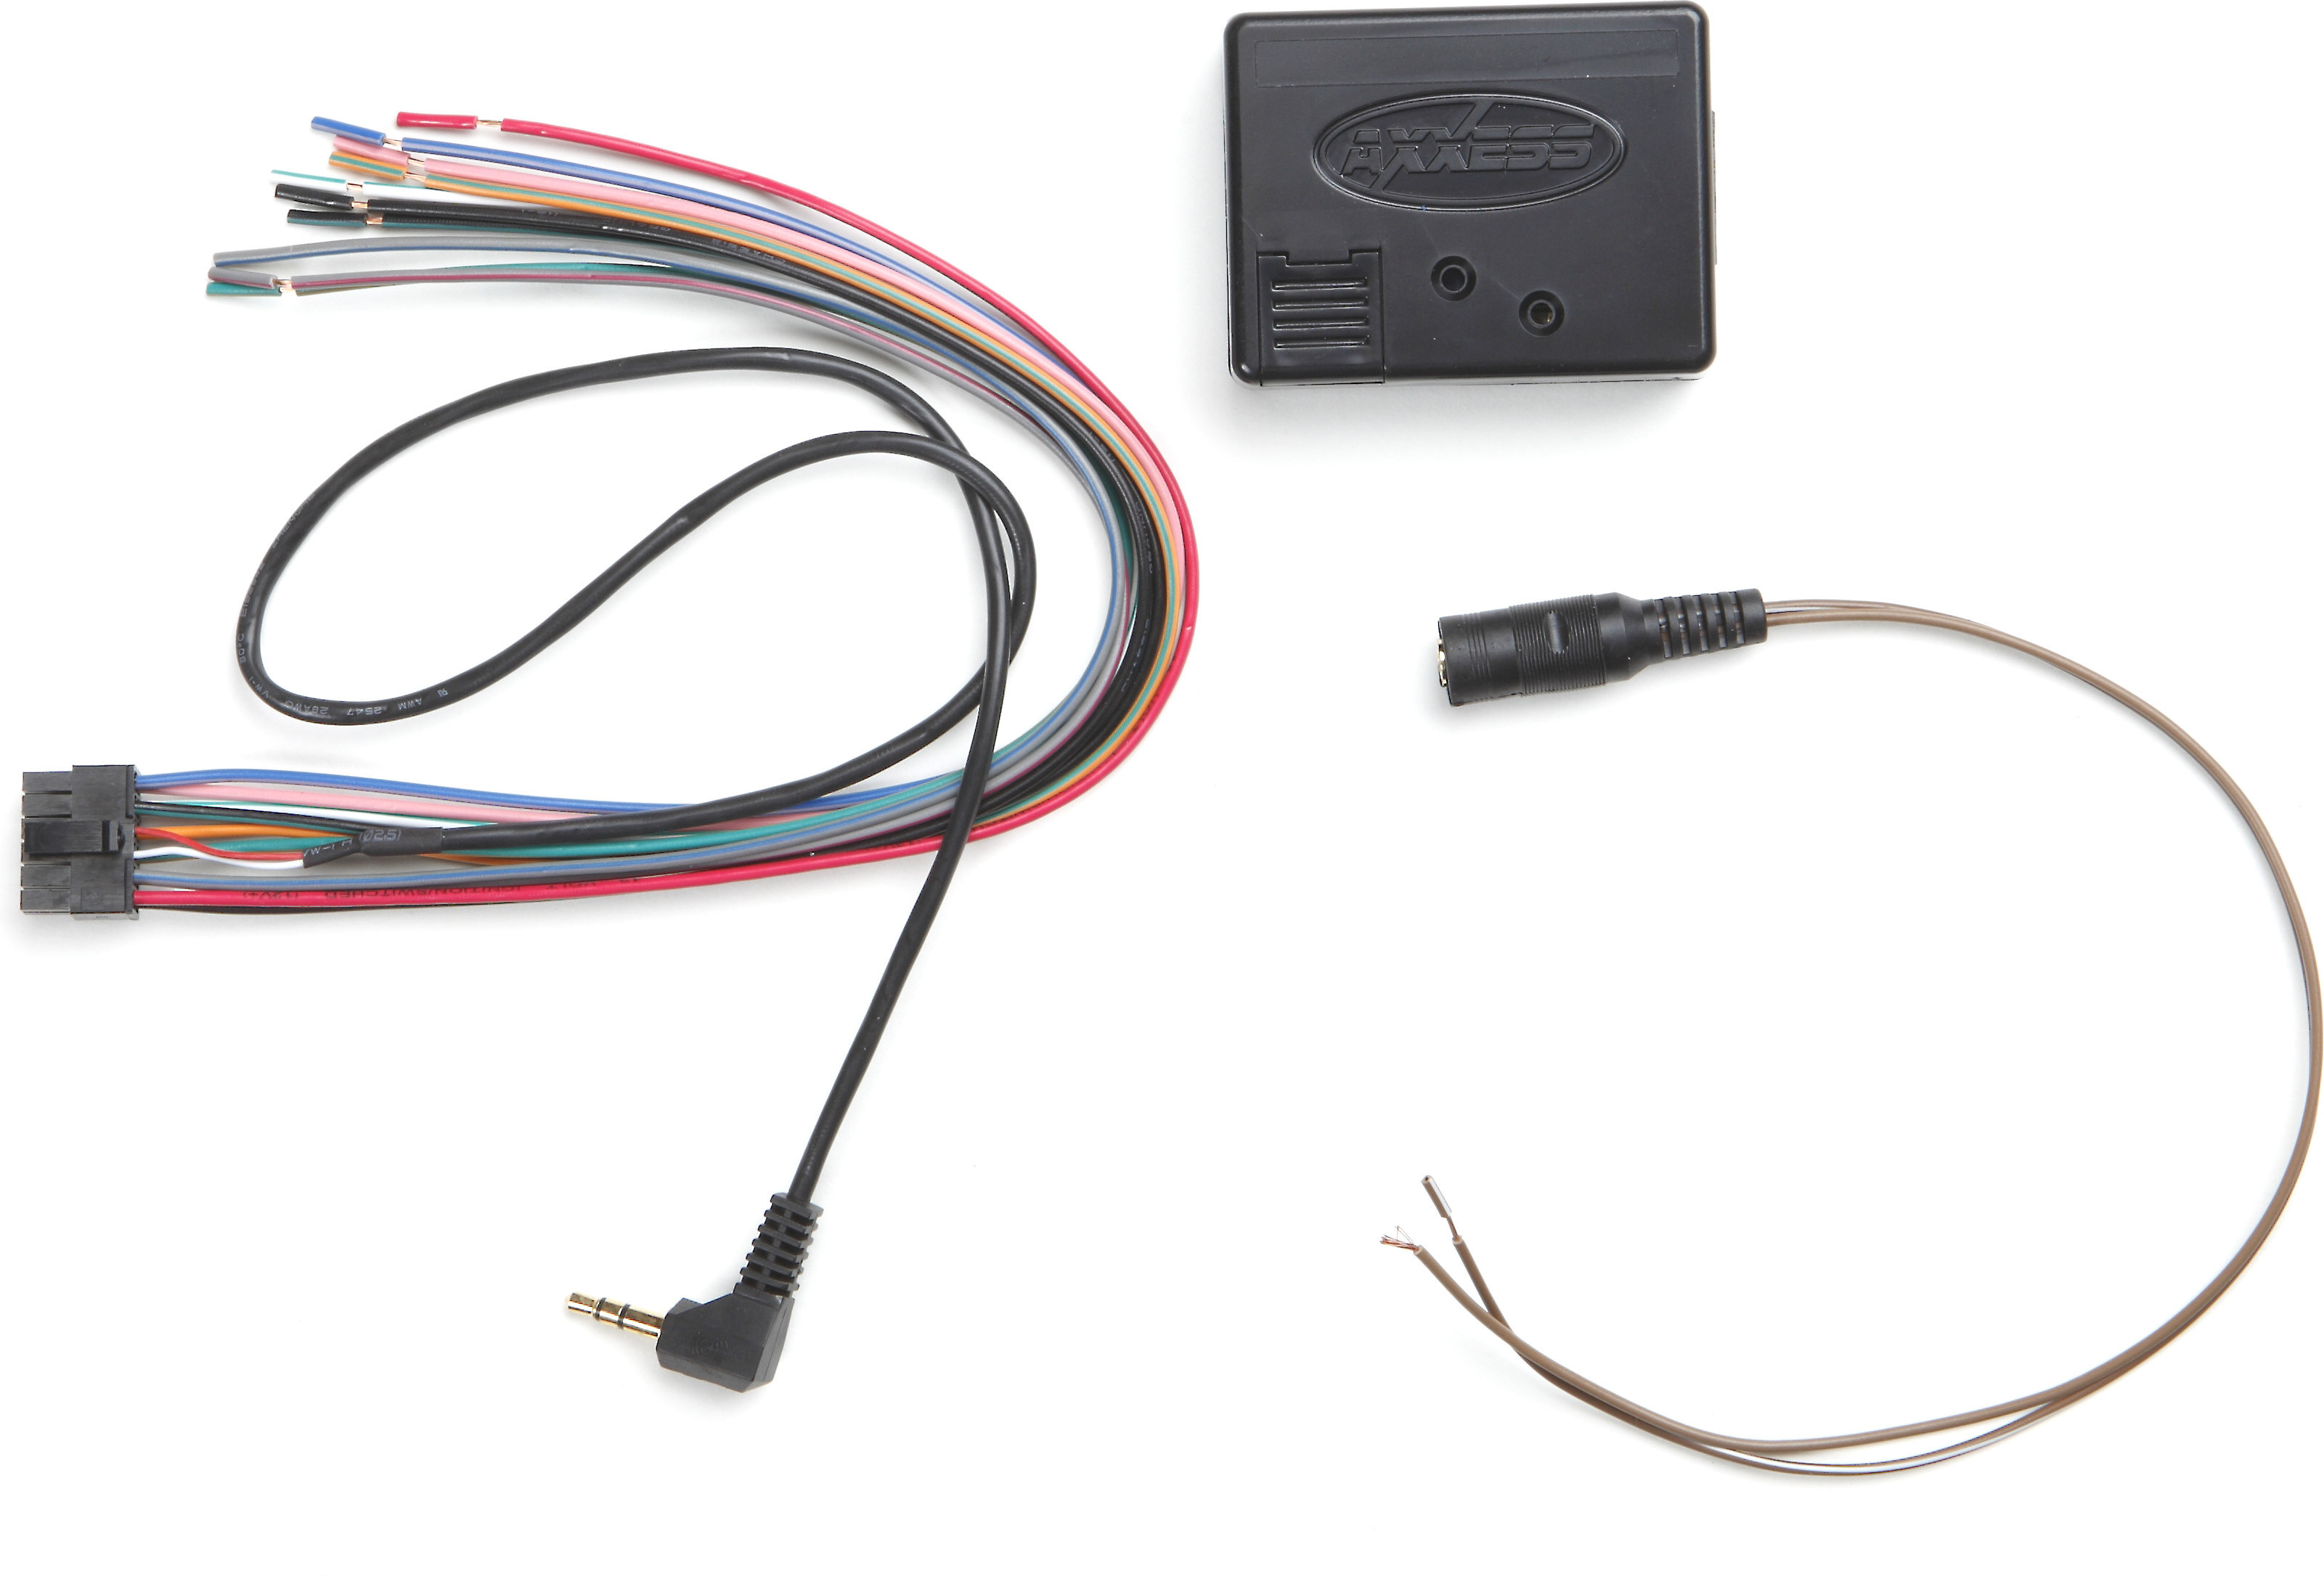 axxess aswc-1 steering wheel control adapter connects your car's steering  wheel audio controls to select aftermarket car stereos at crutchfield